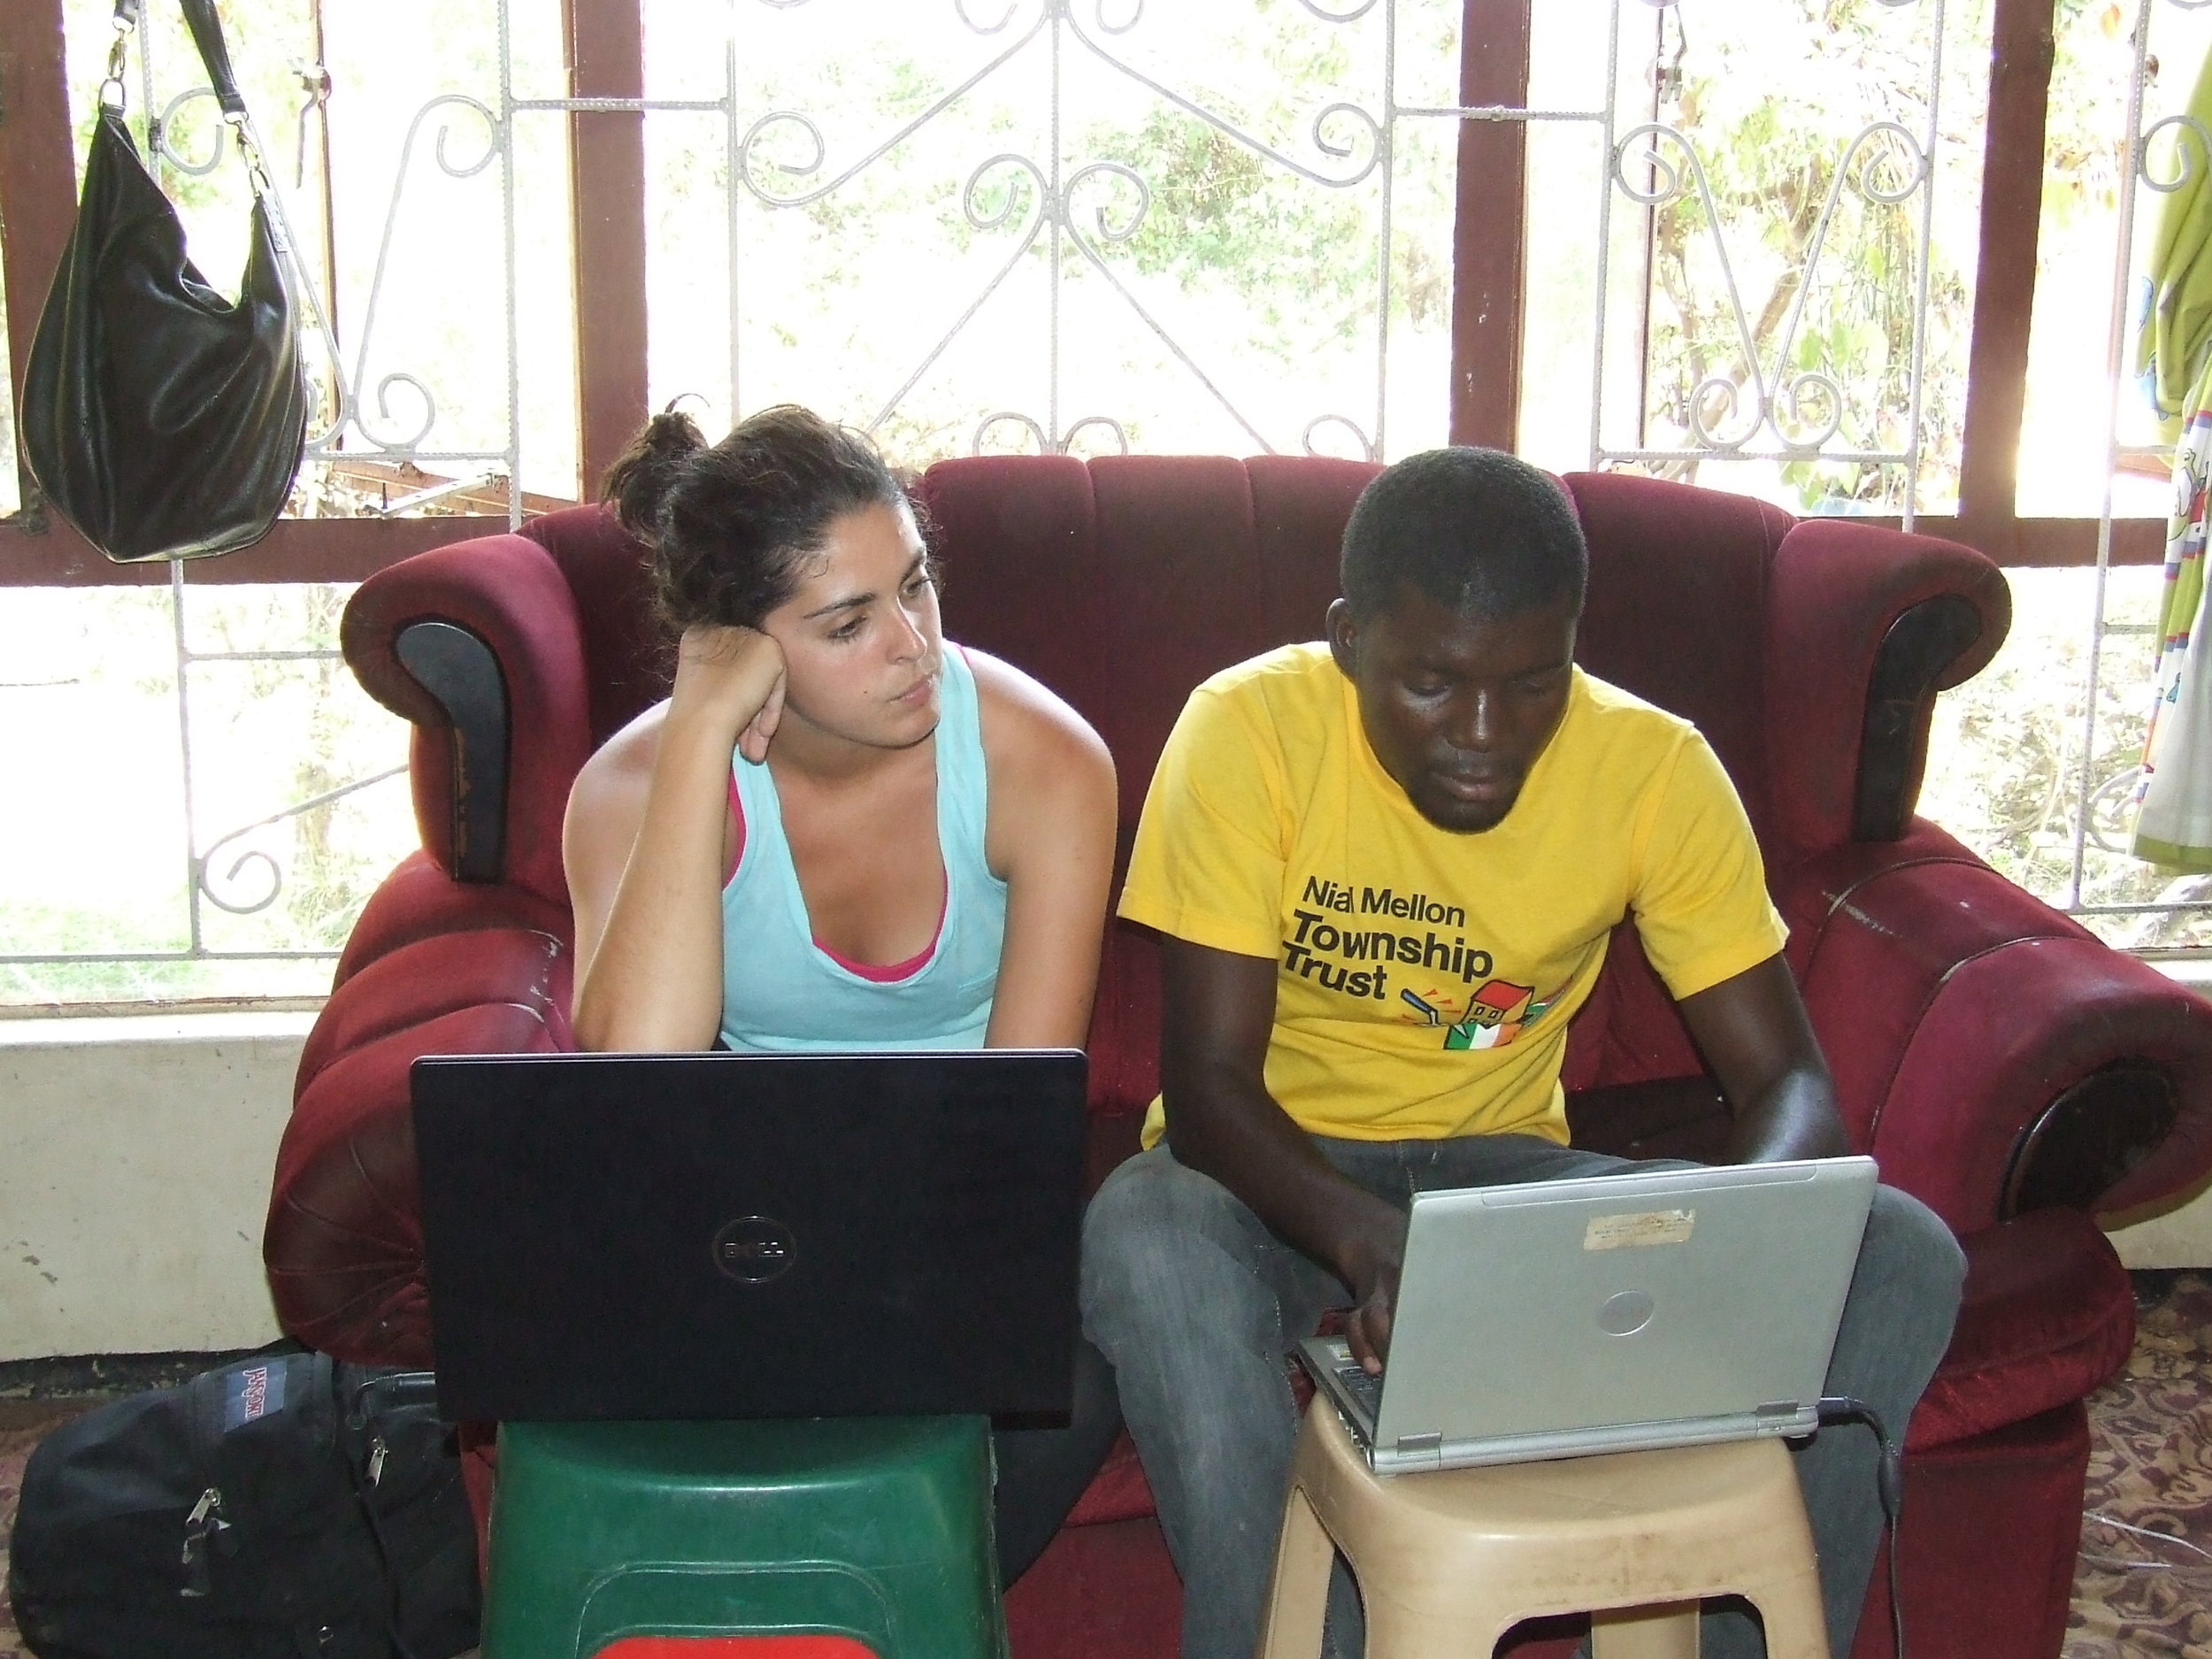 Fred and Julie-Anne, in August 2010, work on tracking student participation in activities.